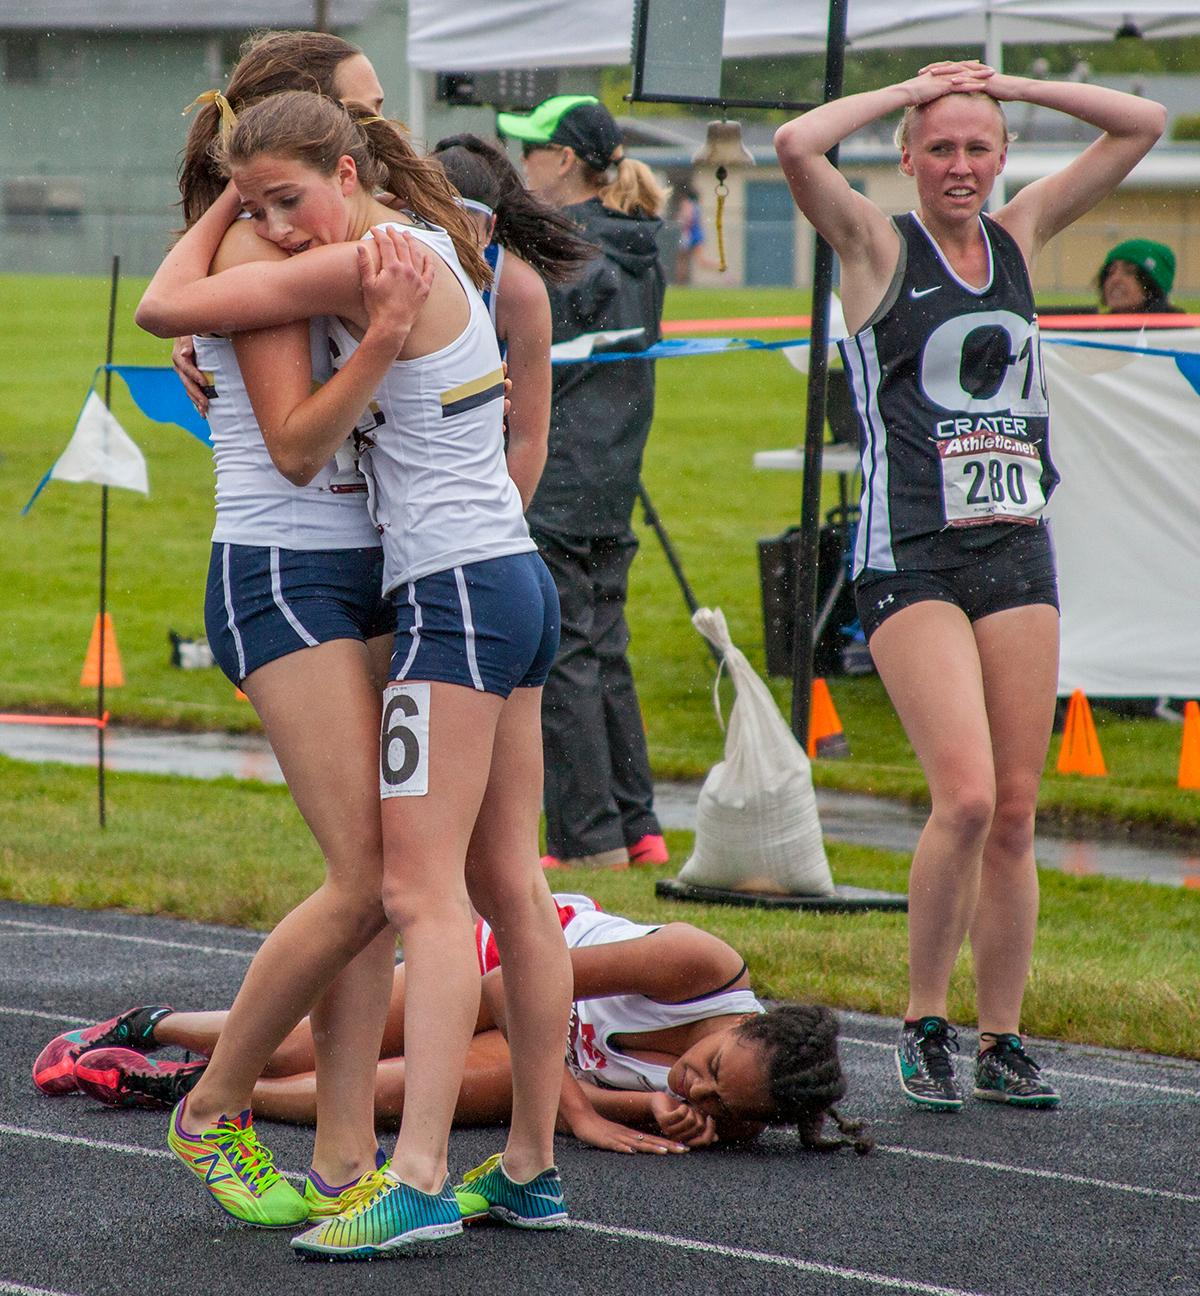 Runners celebrate after running the Women's 1500 Meters event at the 5A-3 Midwestern League District Track Championship. Photo by Vannie Cooper, Oregon News Lab